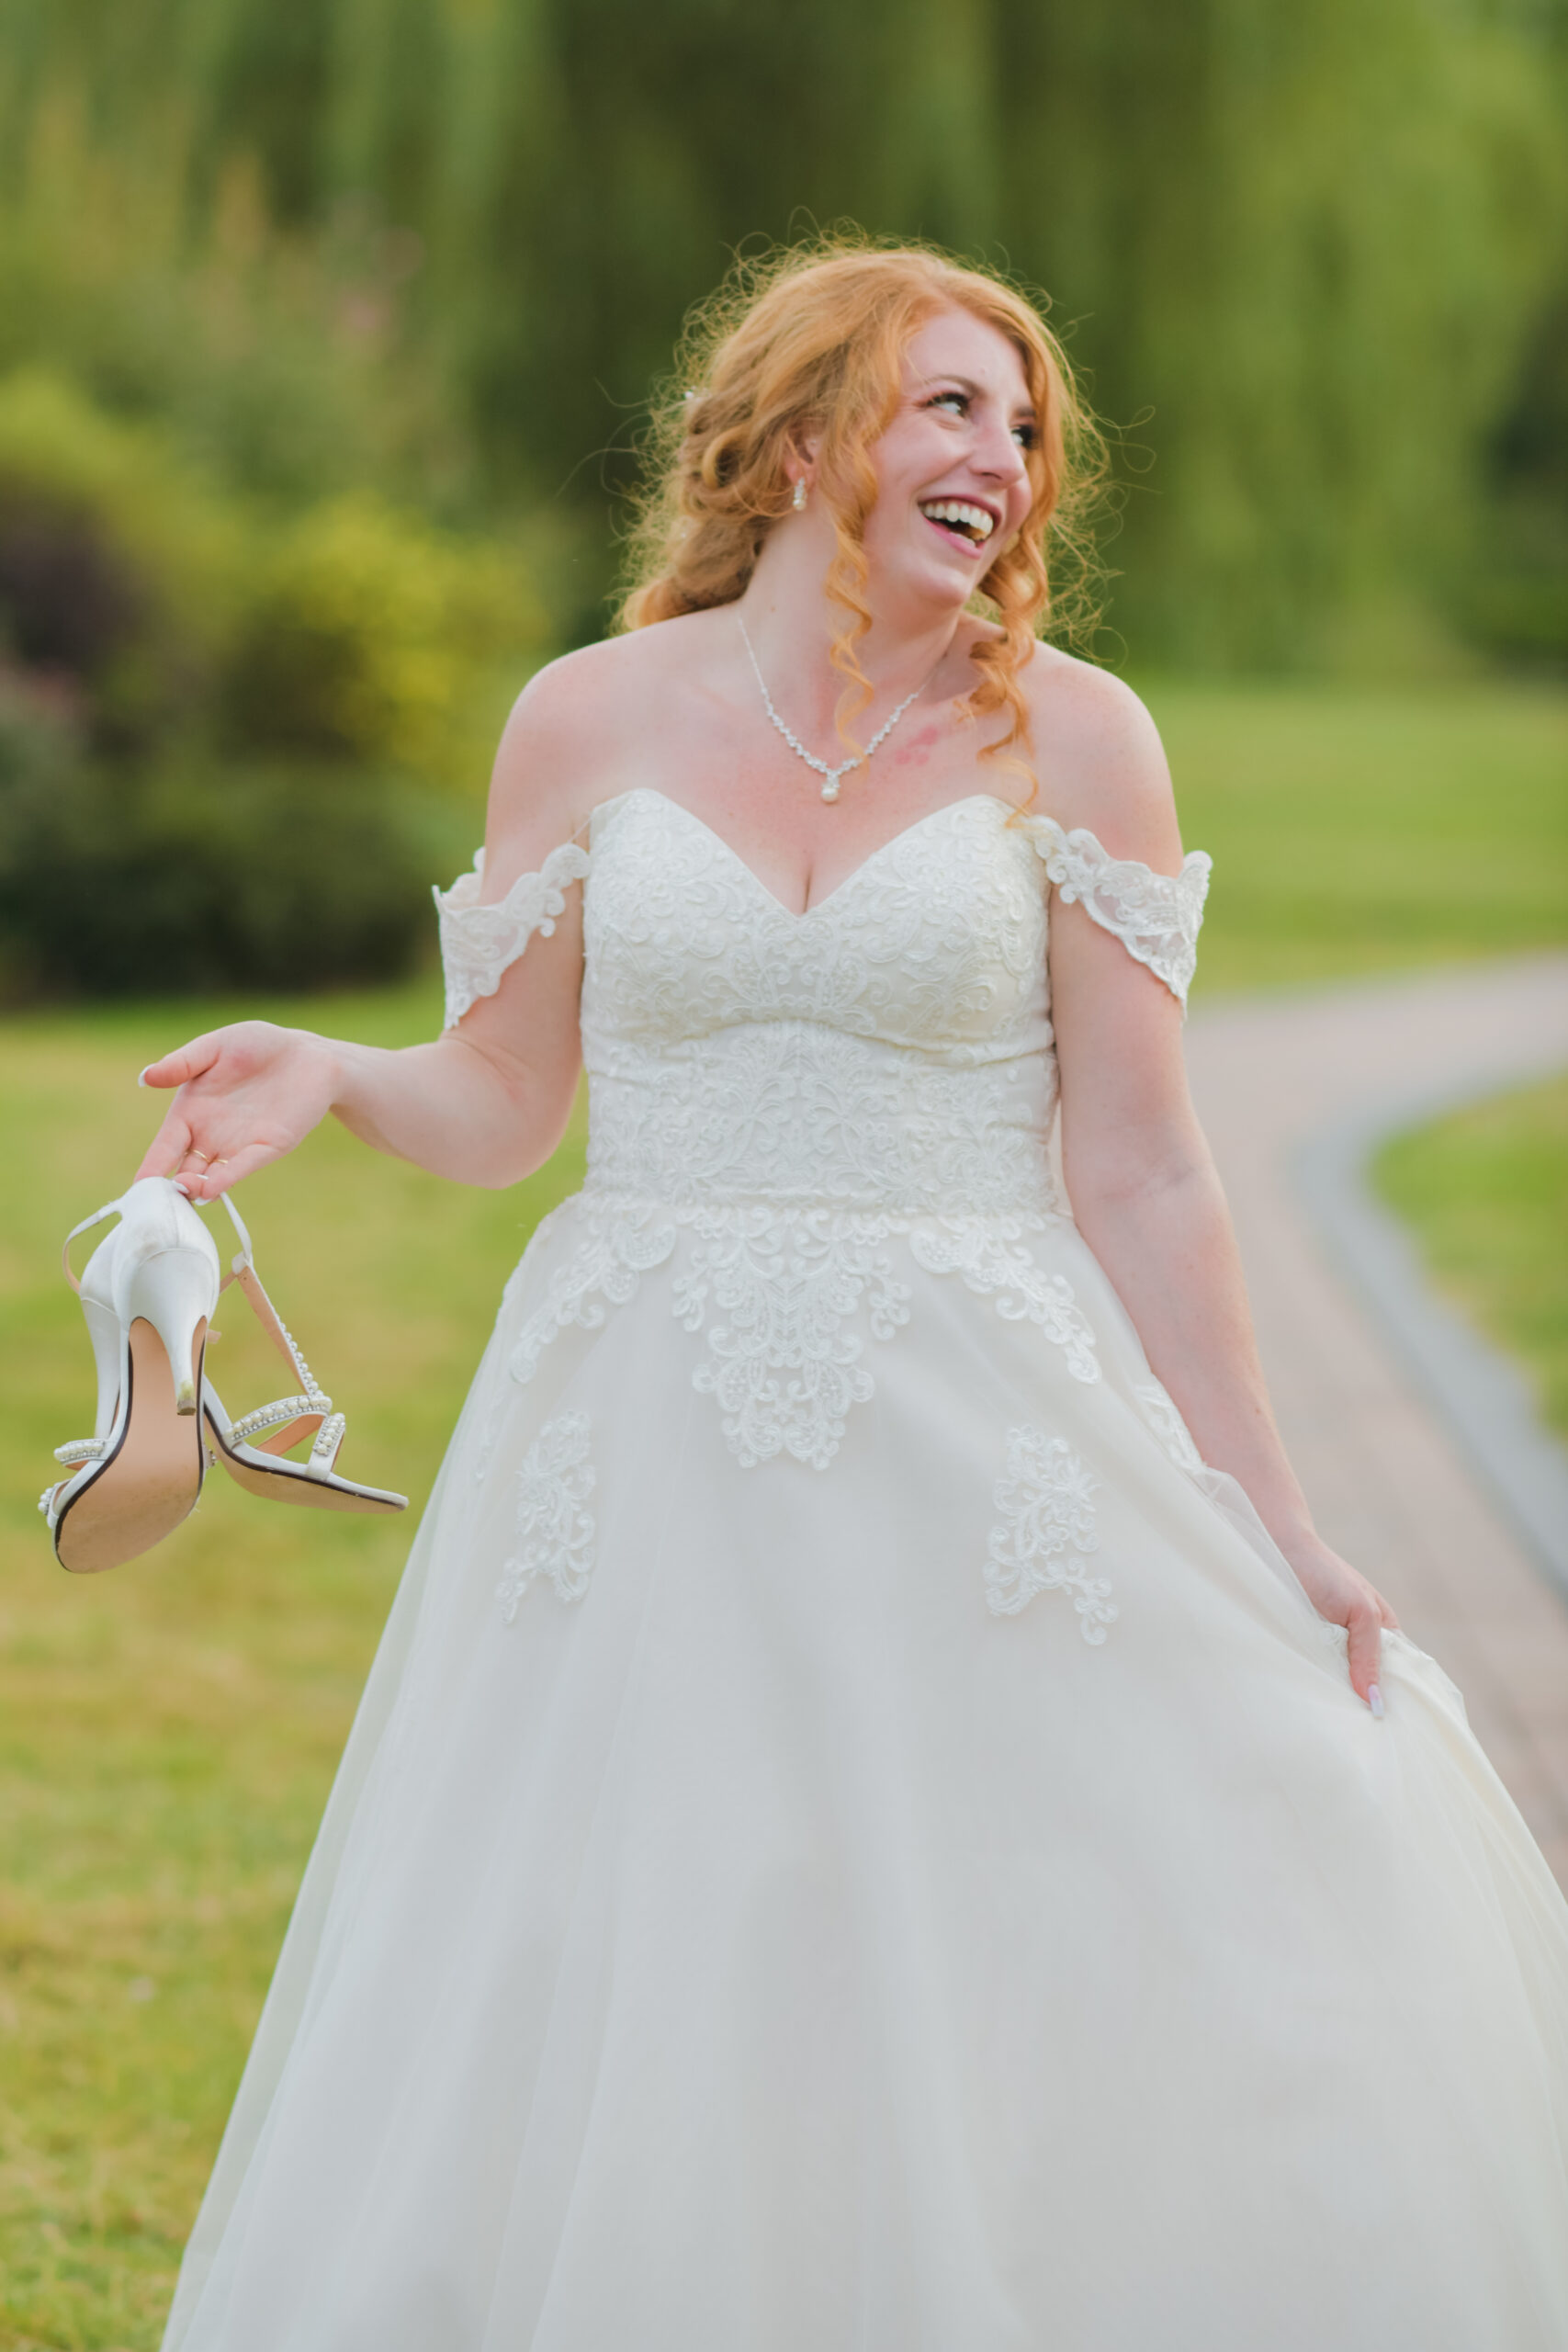 Bride Wedding Photography at Wootton Park